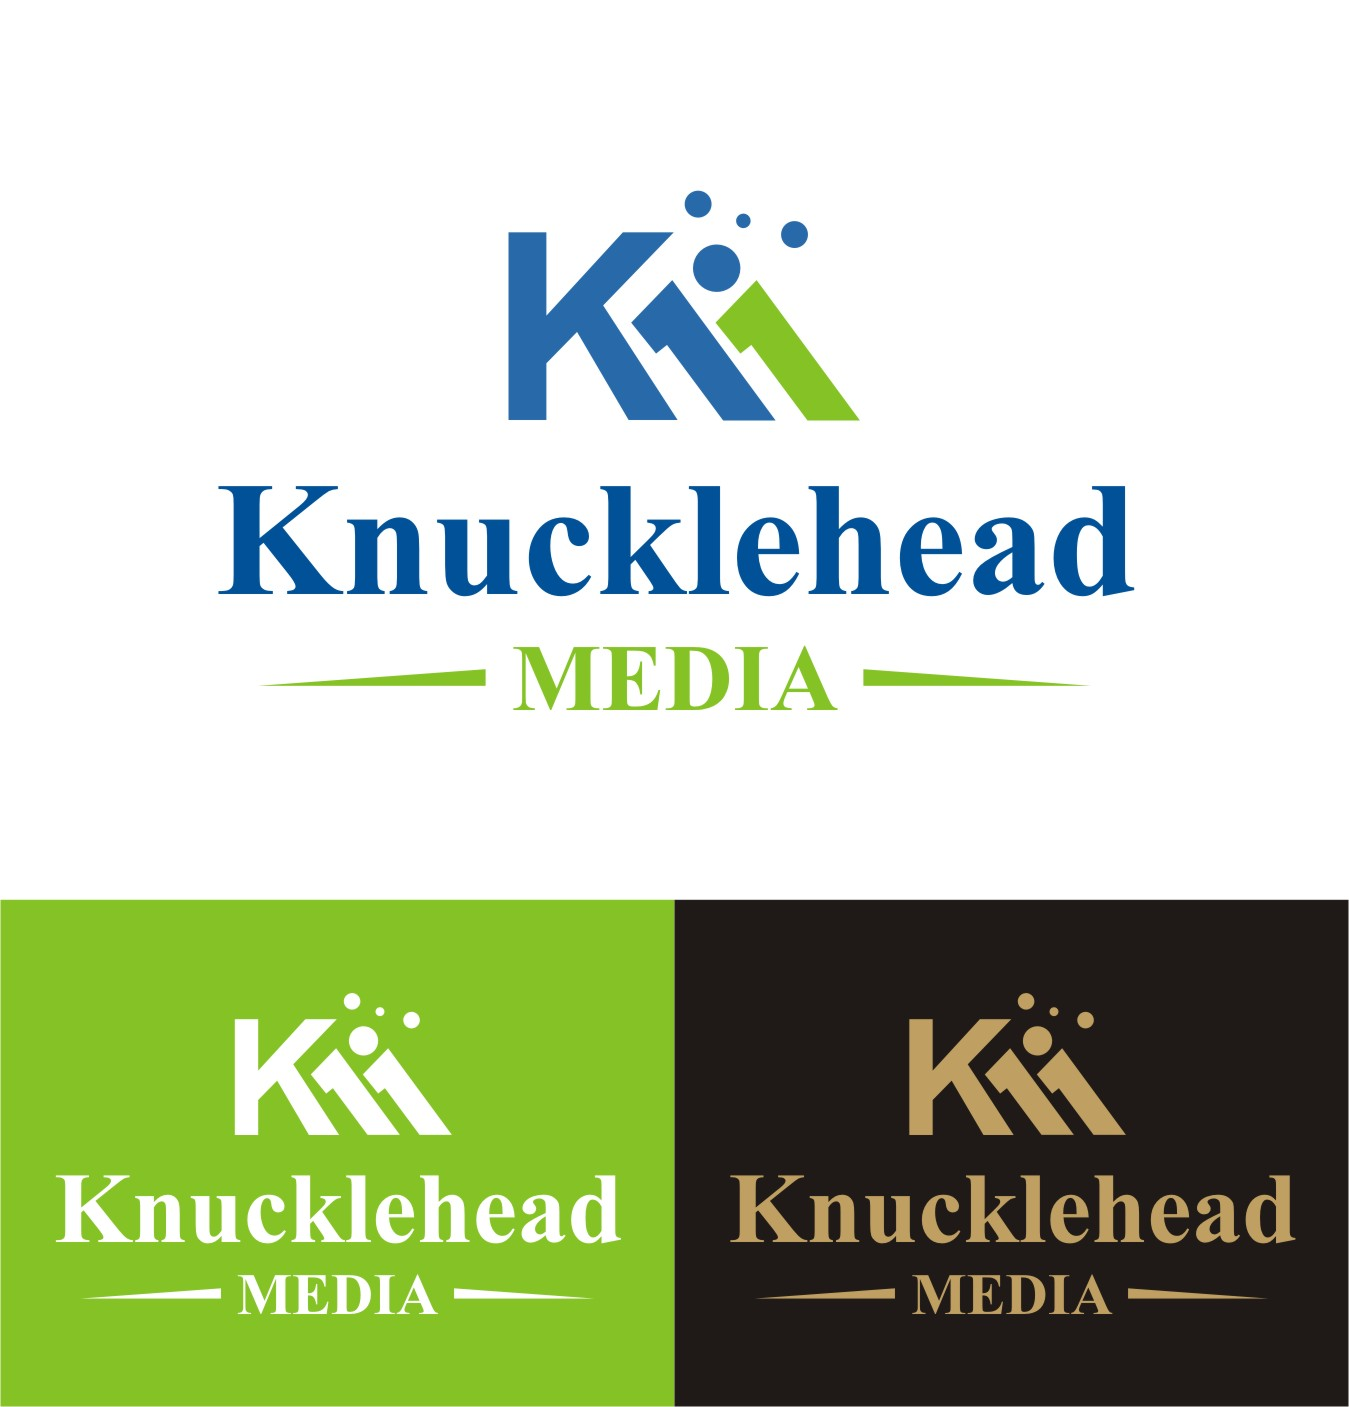 Logo Design by I graphics GRAPHICS - Entry No. 38 in the Logo Design Contest Imaginative Logo Design for knucklehead media.